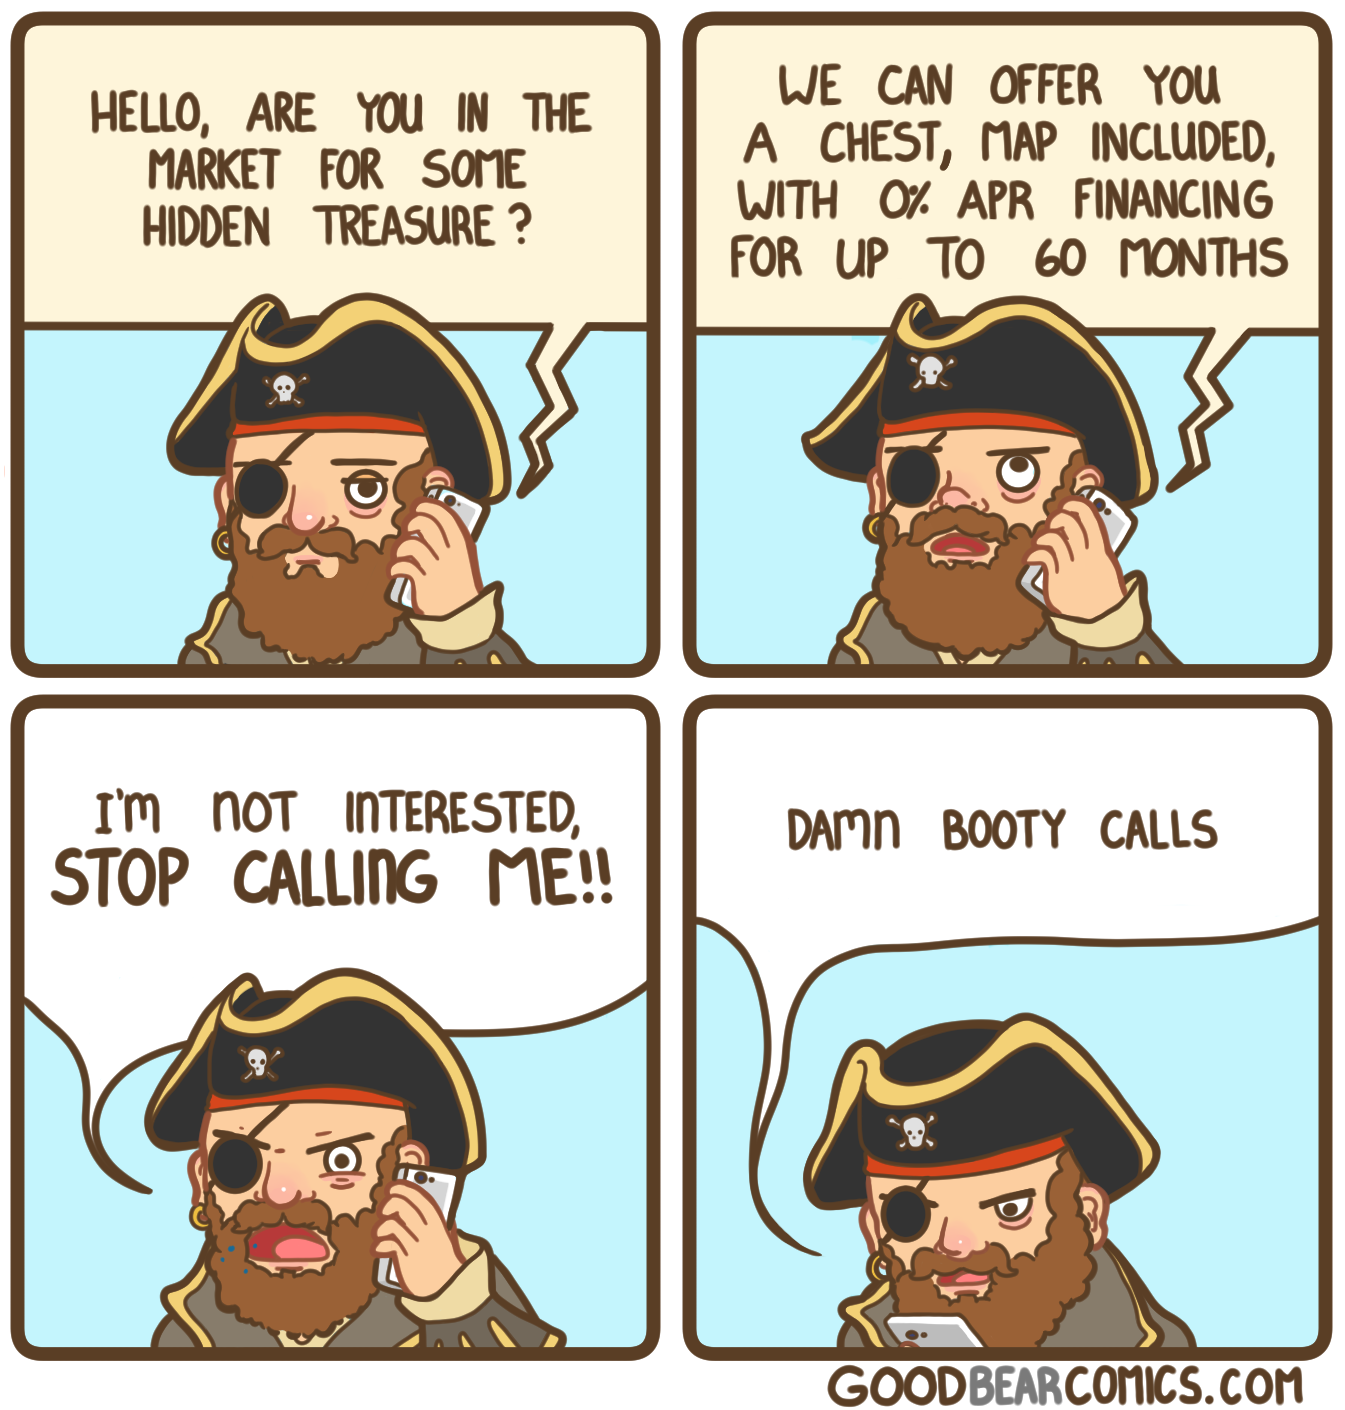 http://goodbearcomics.files.wordpress.com/2018/04/phone-solicitors-png-3-final.png